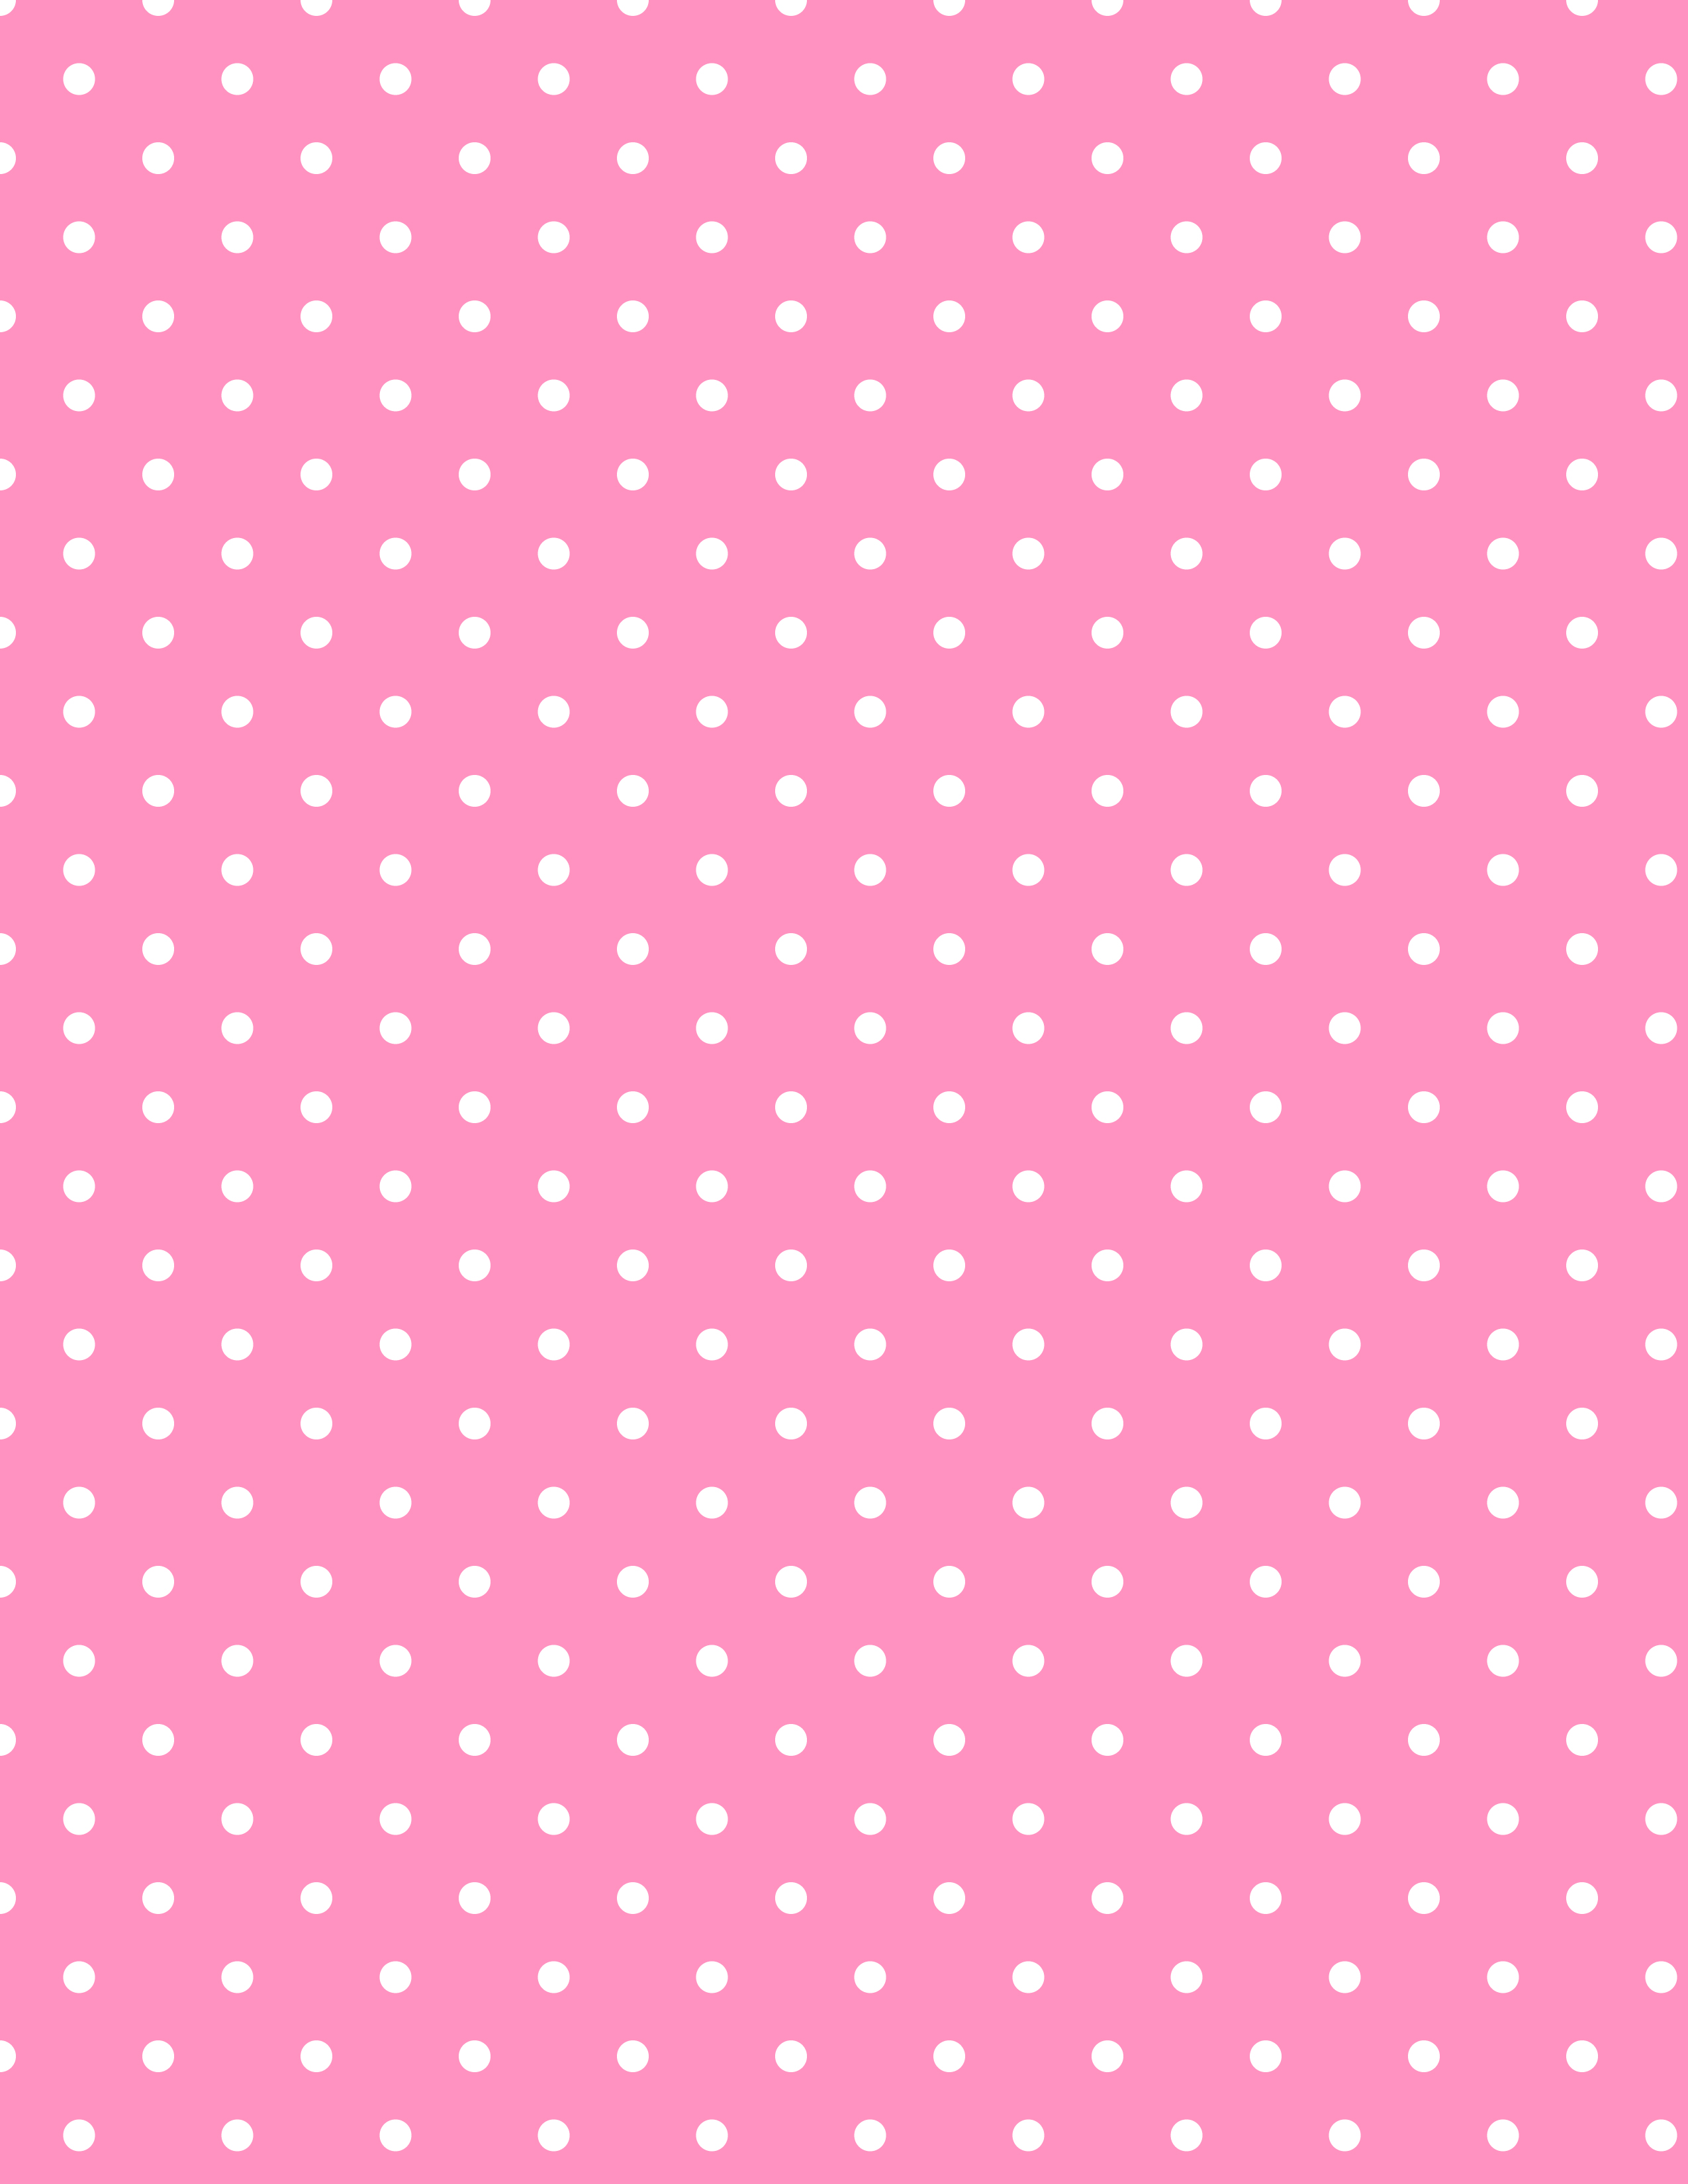 Pink background clipart #14